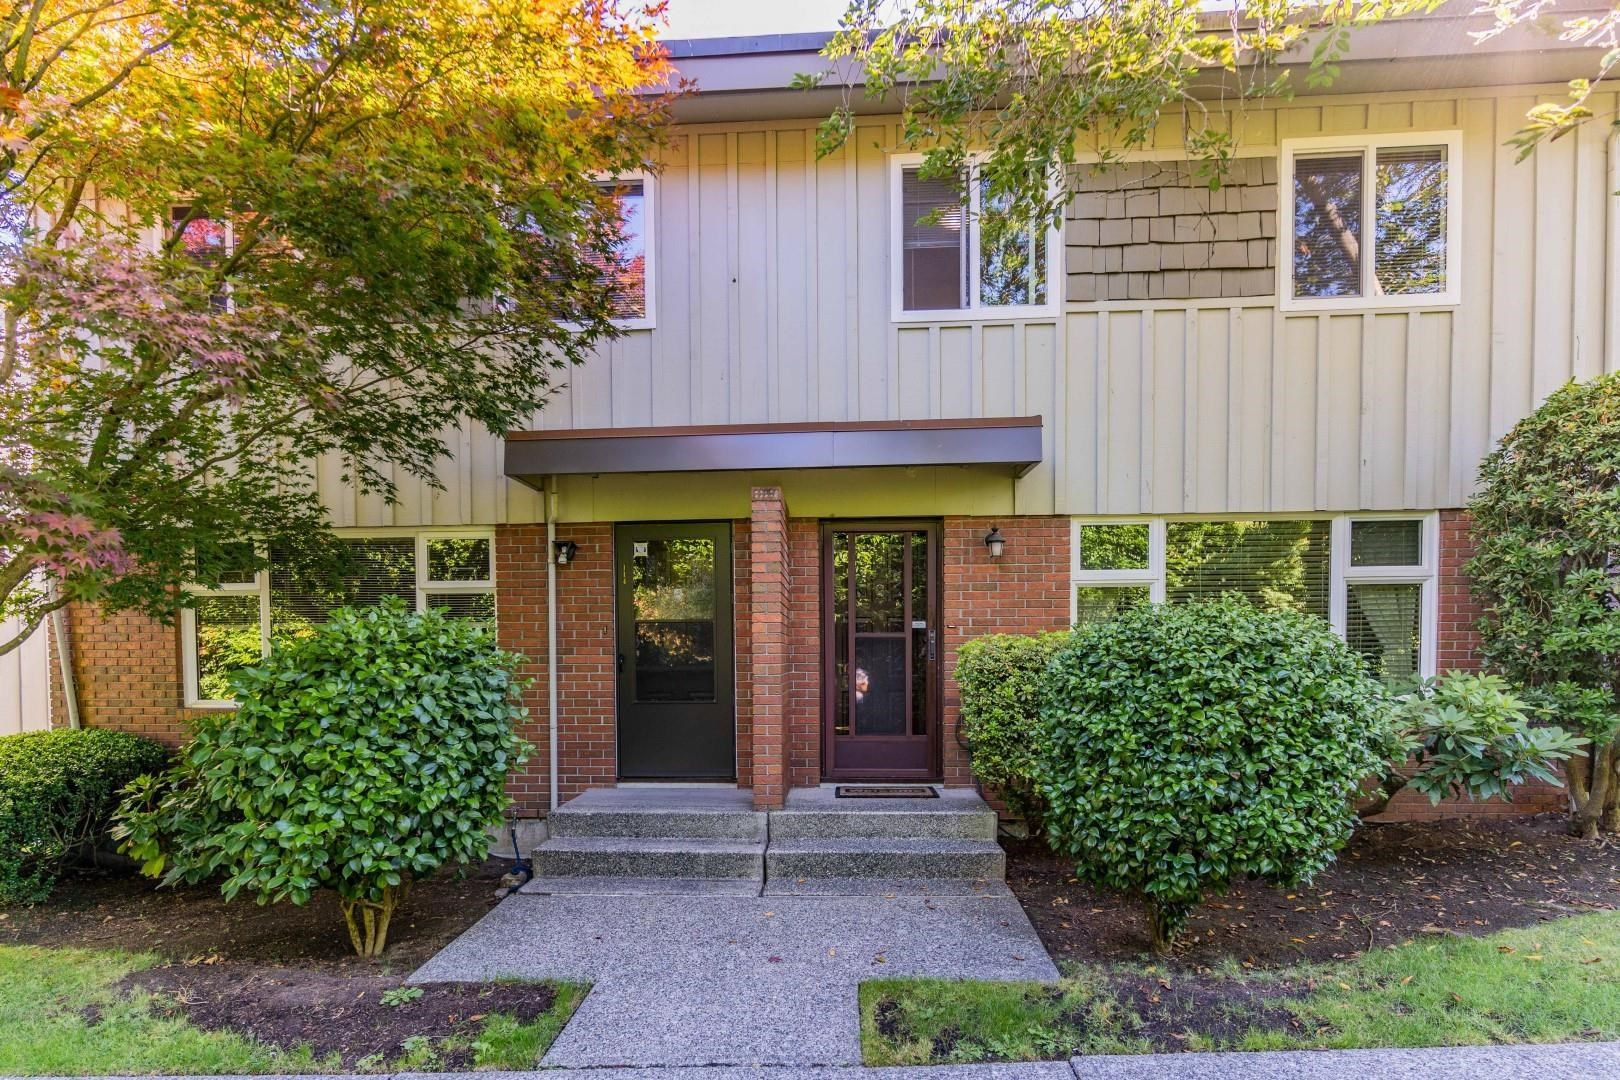 """Main Photo: 113 9061 HORNE Street in Burnaby: Government Road Townhouse for sale in """"BRAEMAR GARDENS"""" (Burnaby North)  : MLS®# R2615216"""